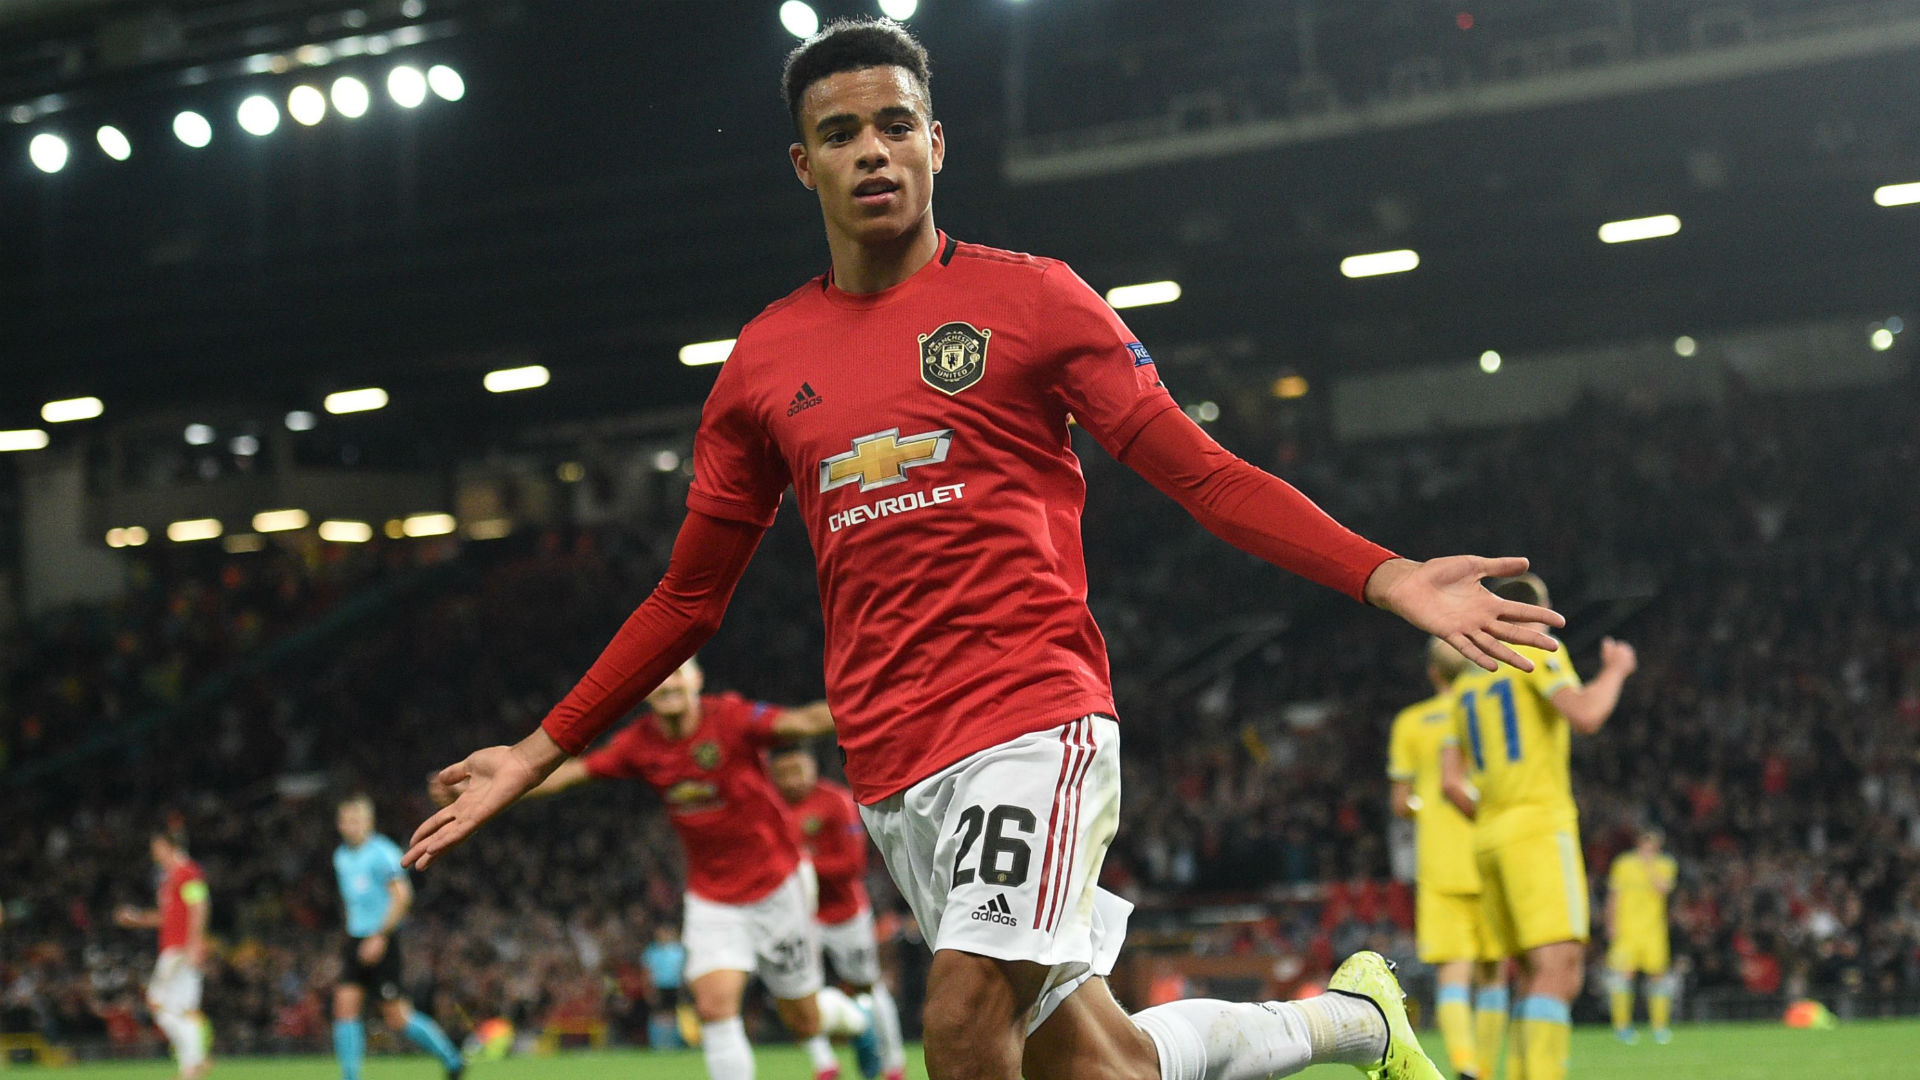 Greenwood becomes first Man Utd scorer born after 2000